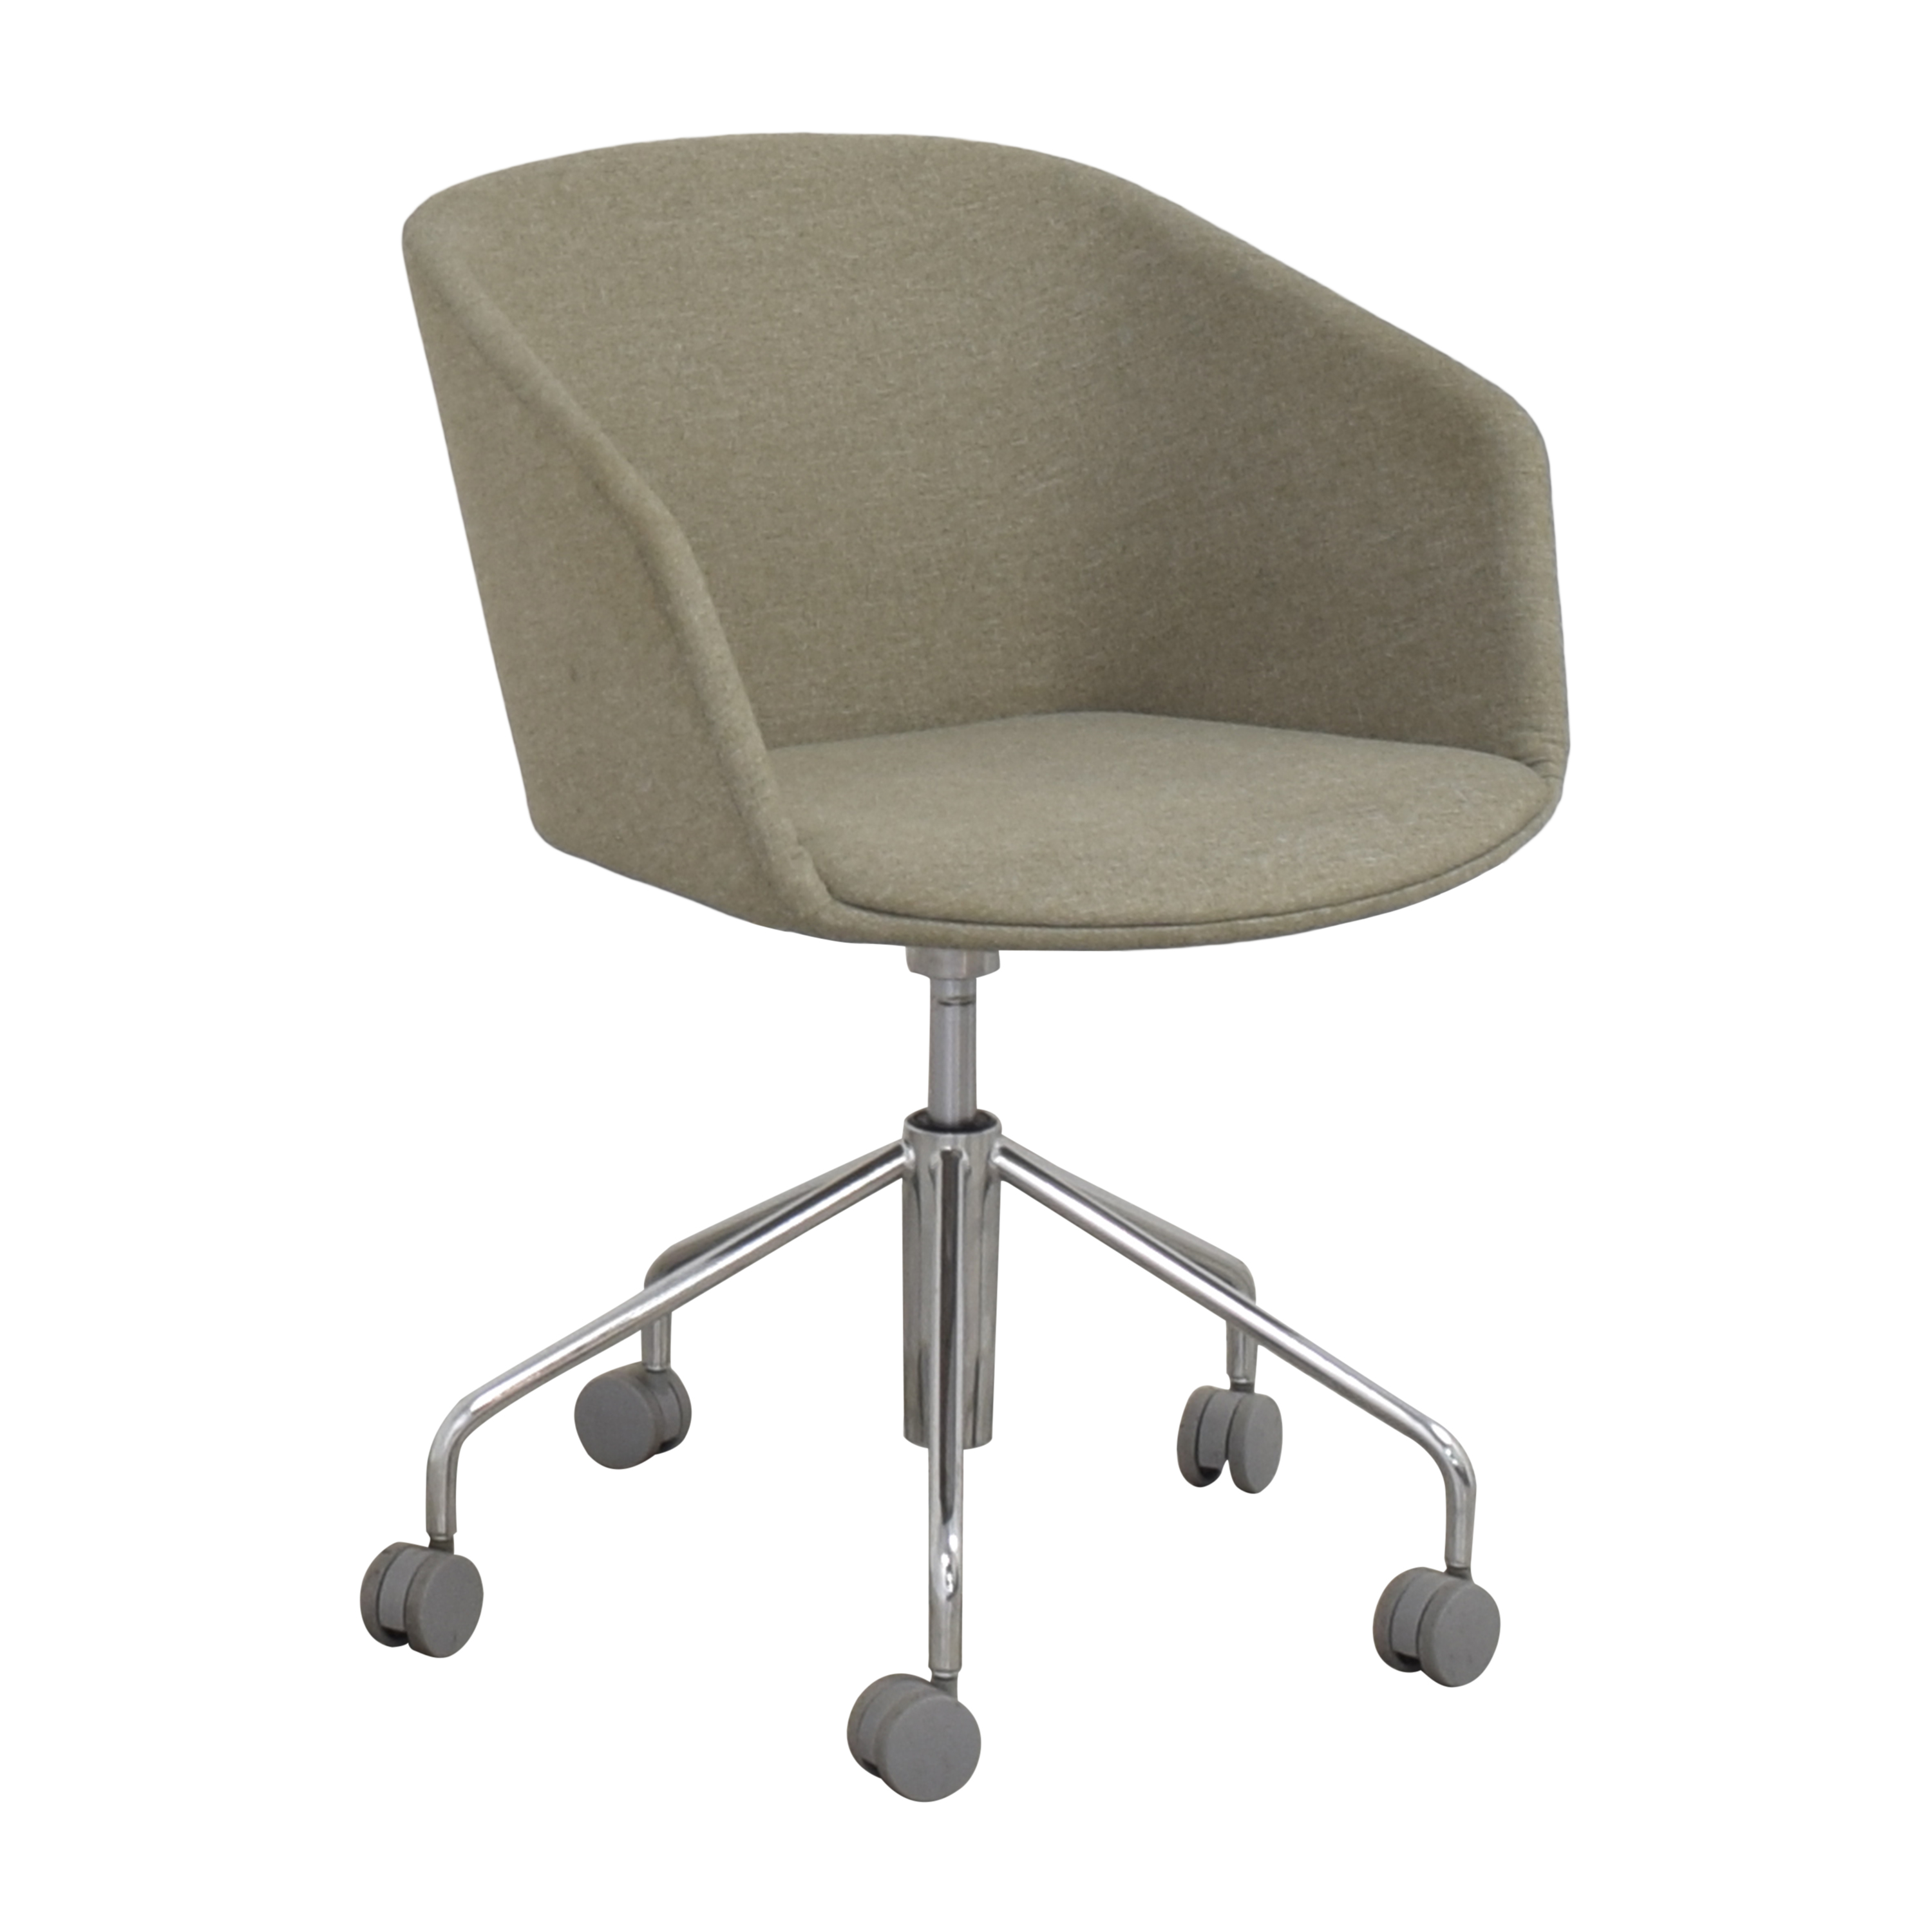 shop Poppin Pitch Meeting Chair Poppin